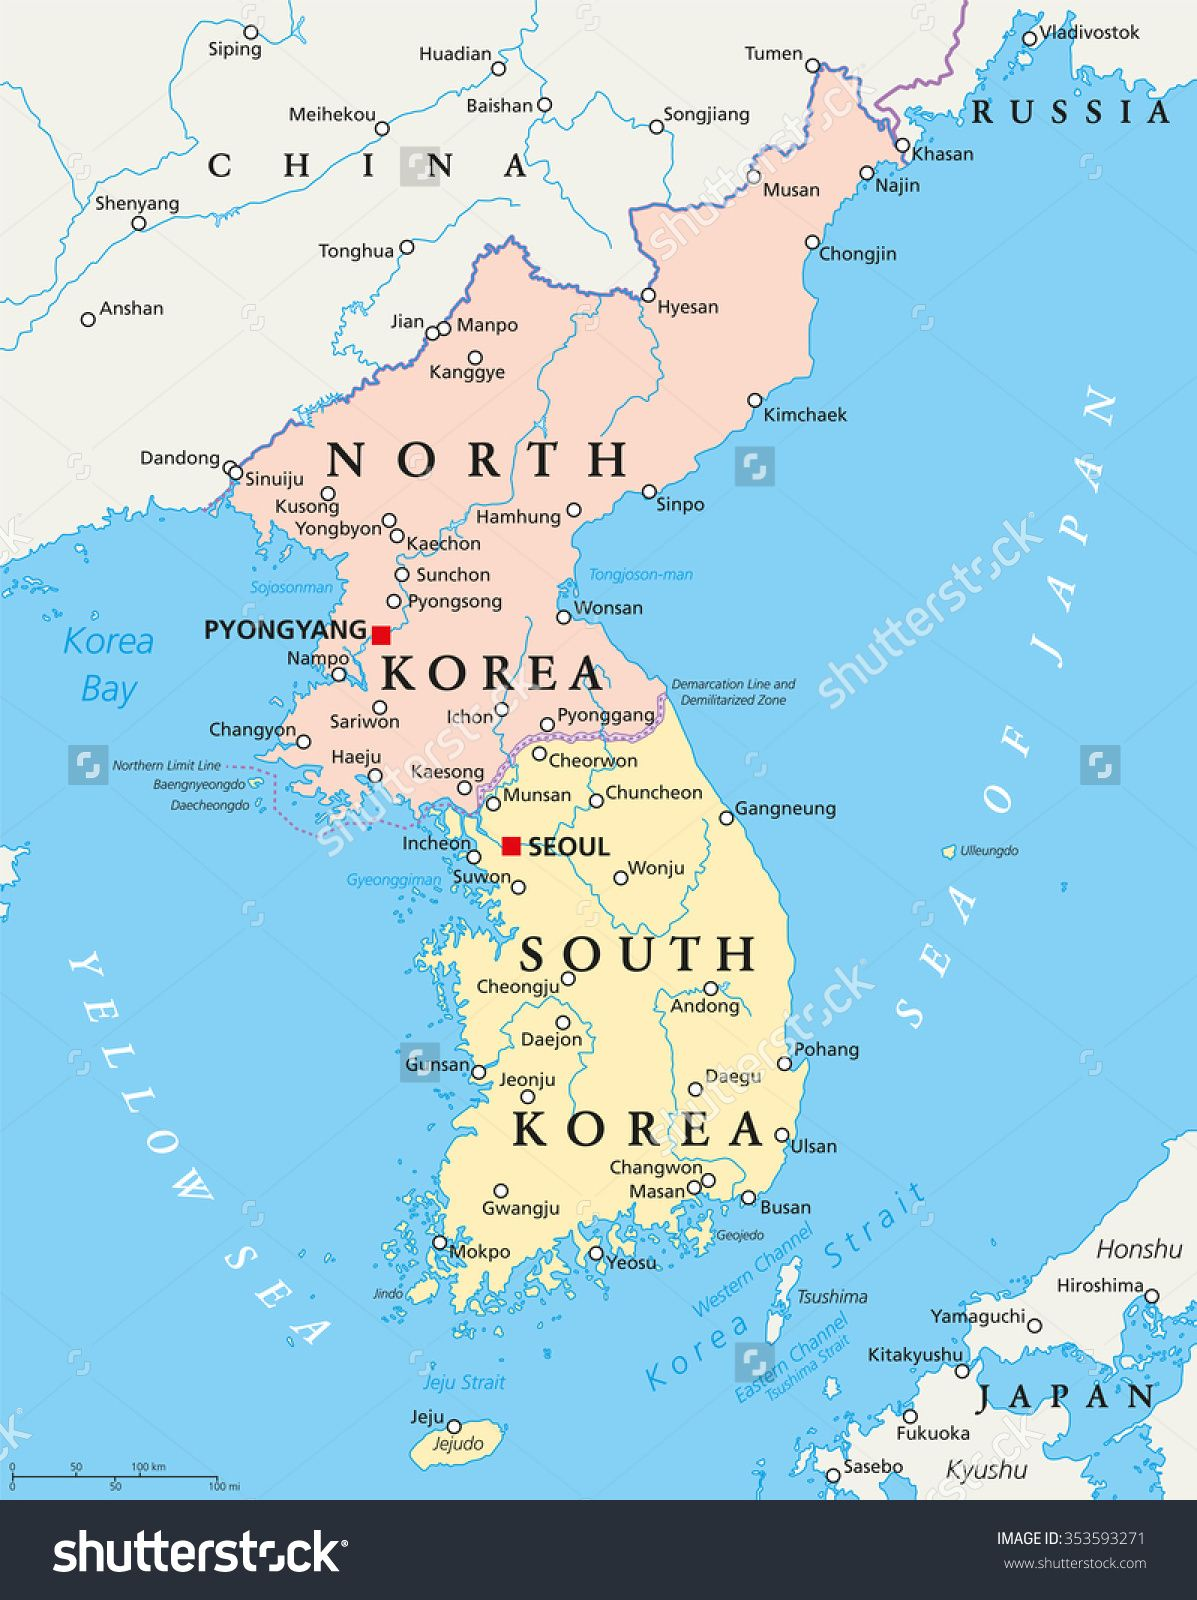 Image result for maps showing north and south korea border borders image result for maps showing north and south korea border gumiabroncs Gallery